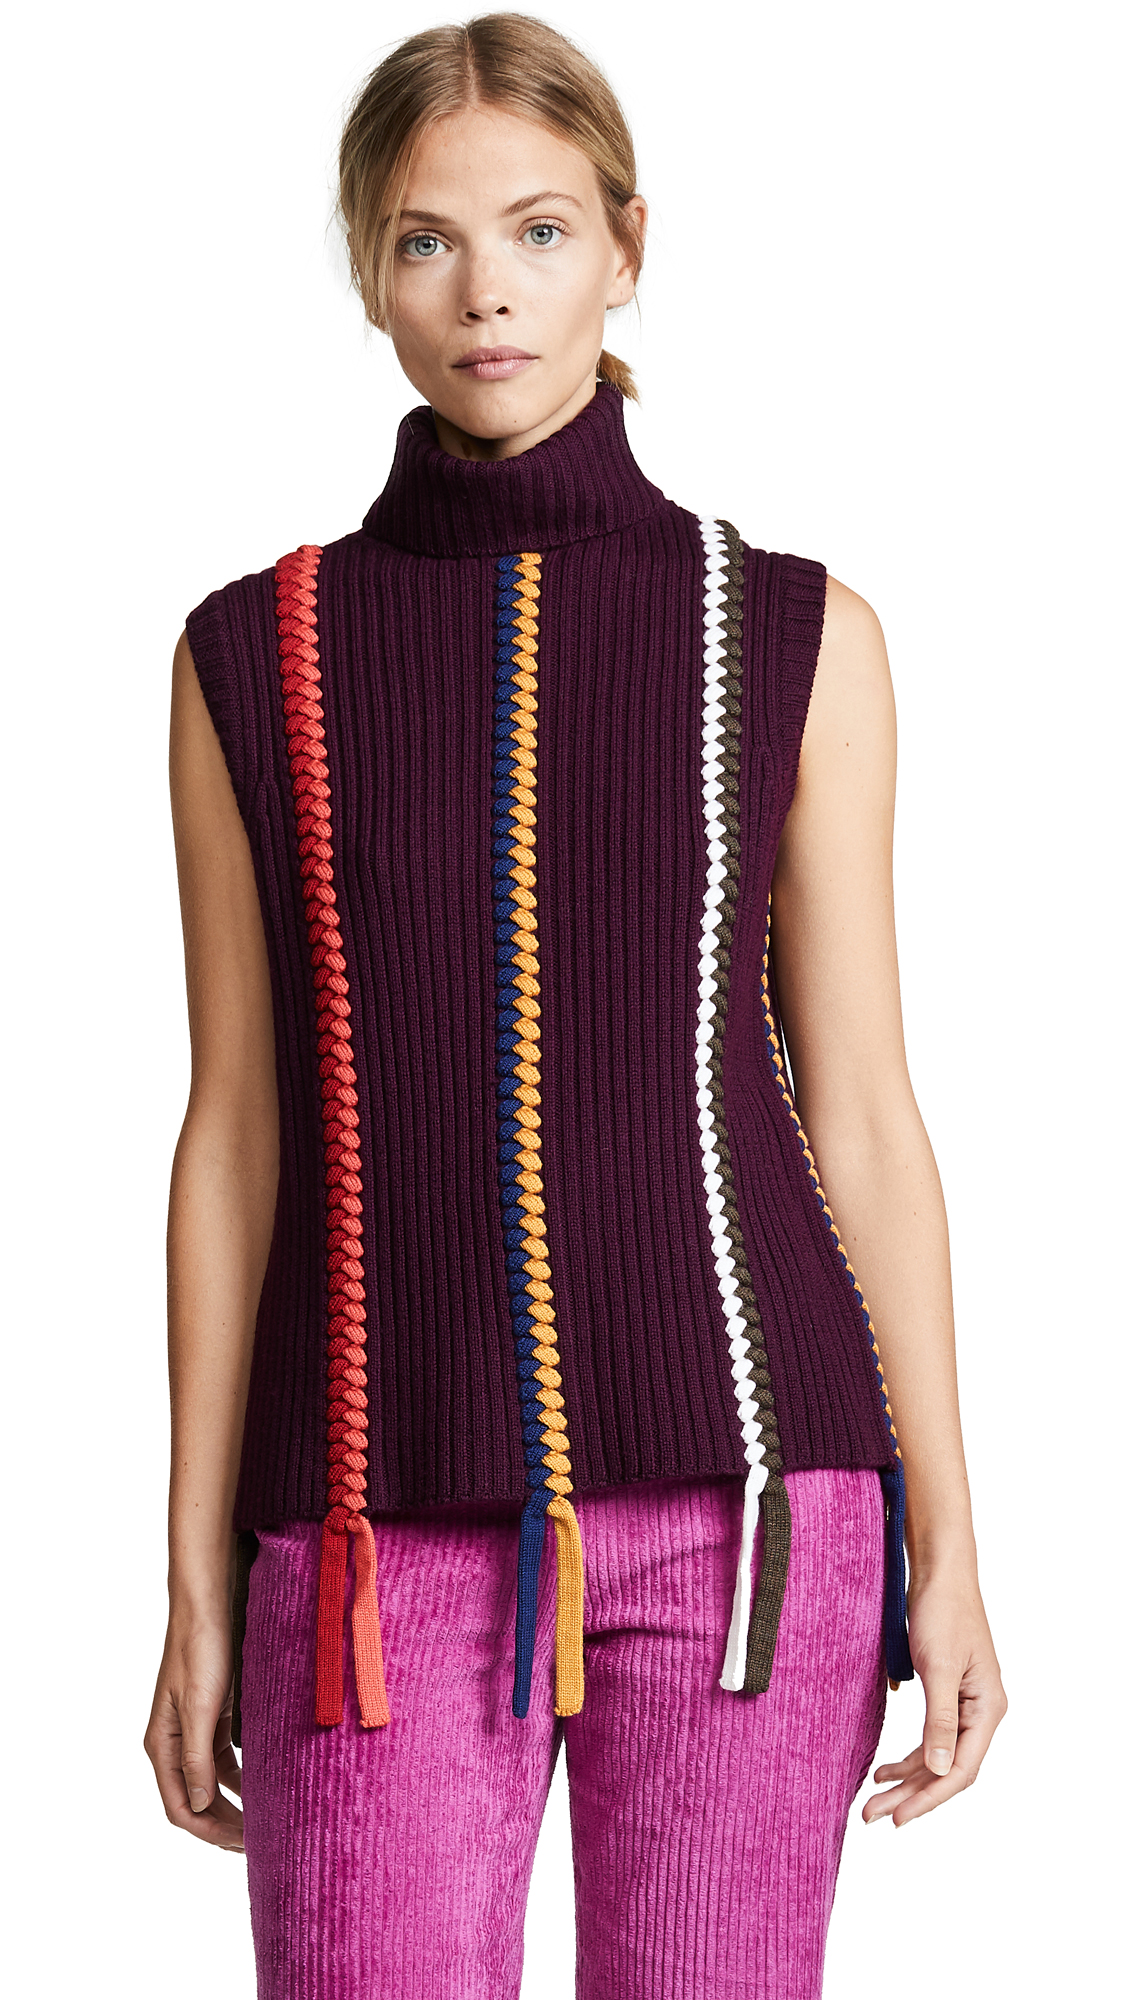 Derek Lam 10 Crosby Sleeveless Turtleneck With Braid Detail In Burgundy Multi